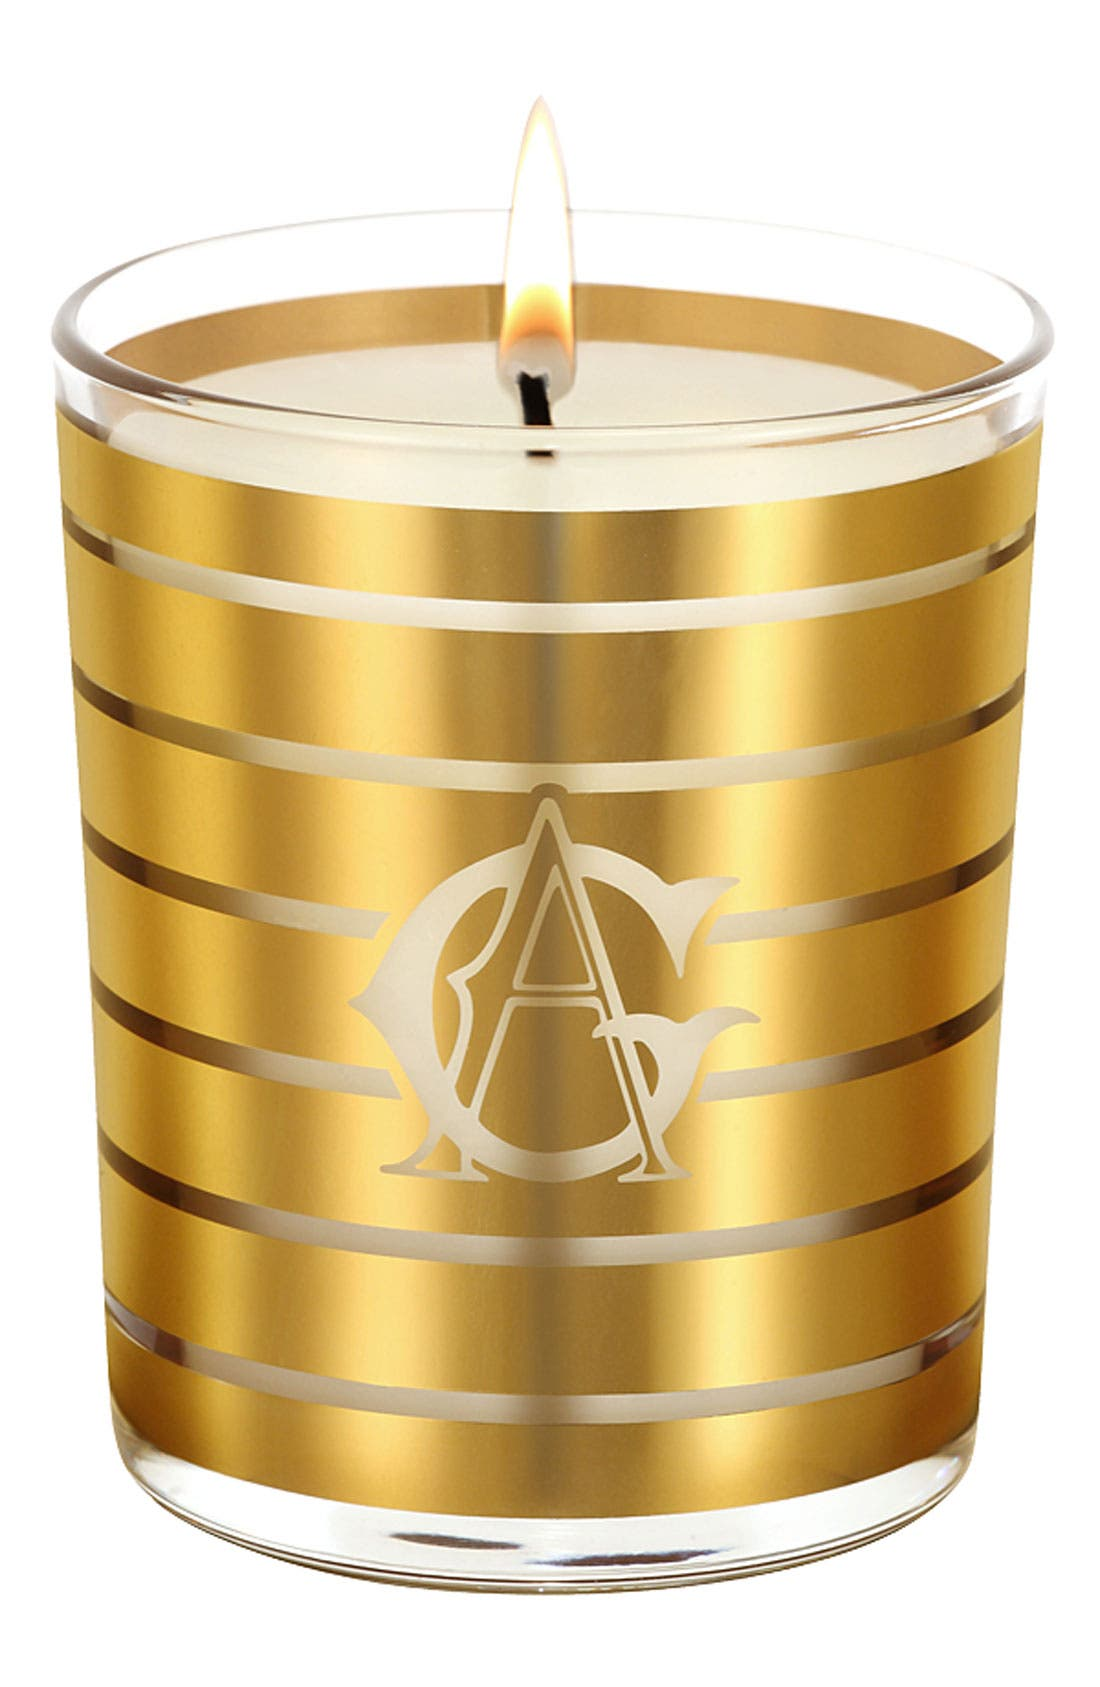 Alternate Image 1 Selected - Annick Goutal 'Noël' Gold Collector Candle